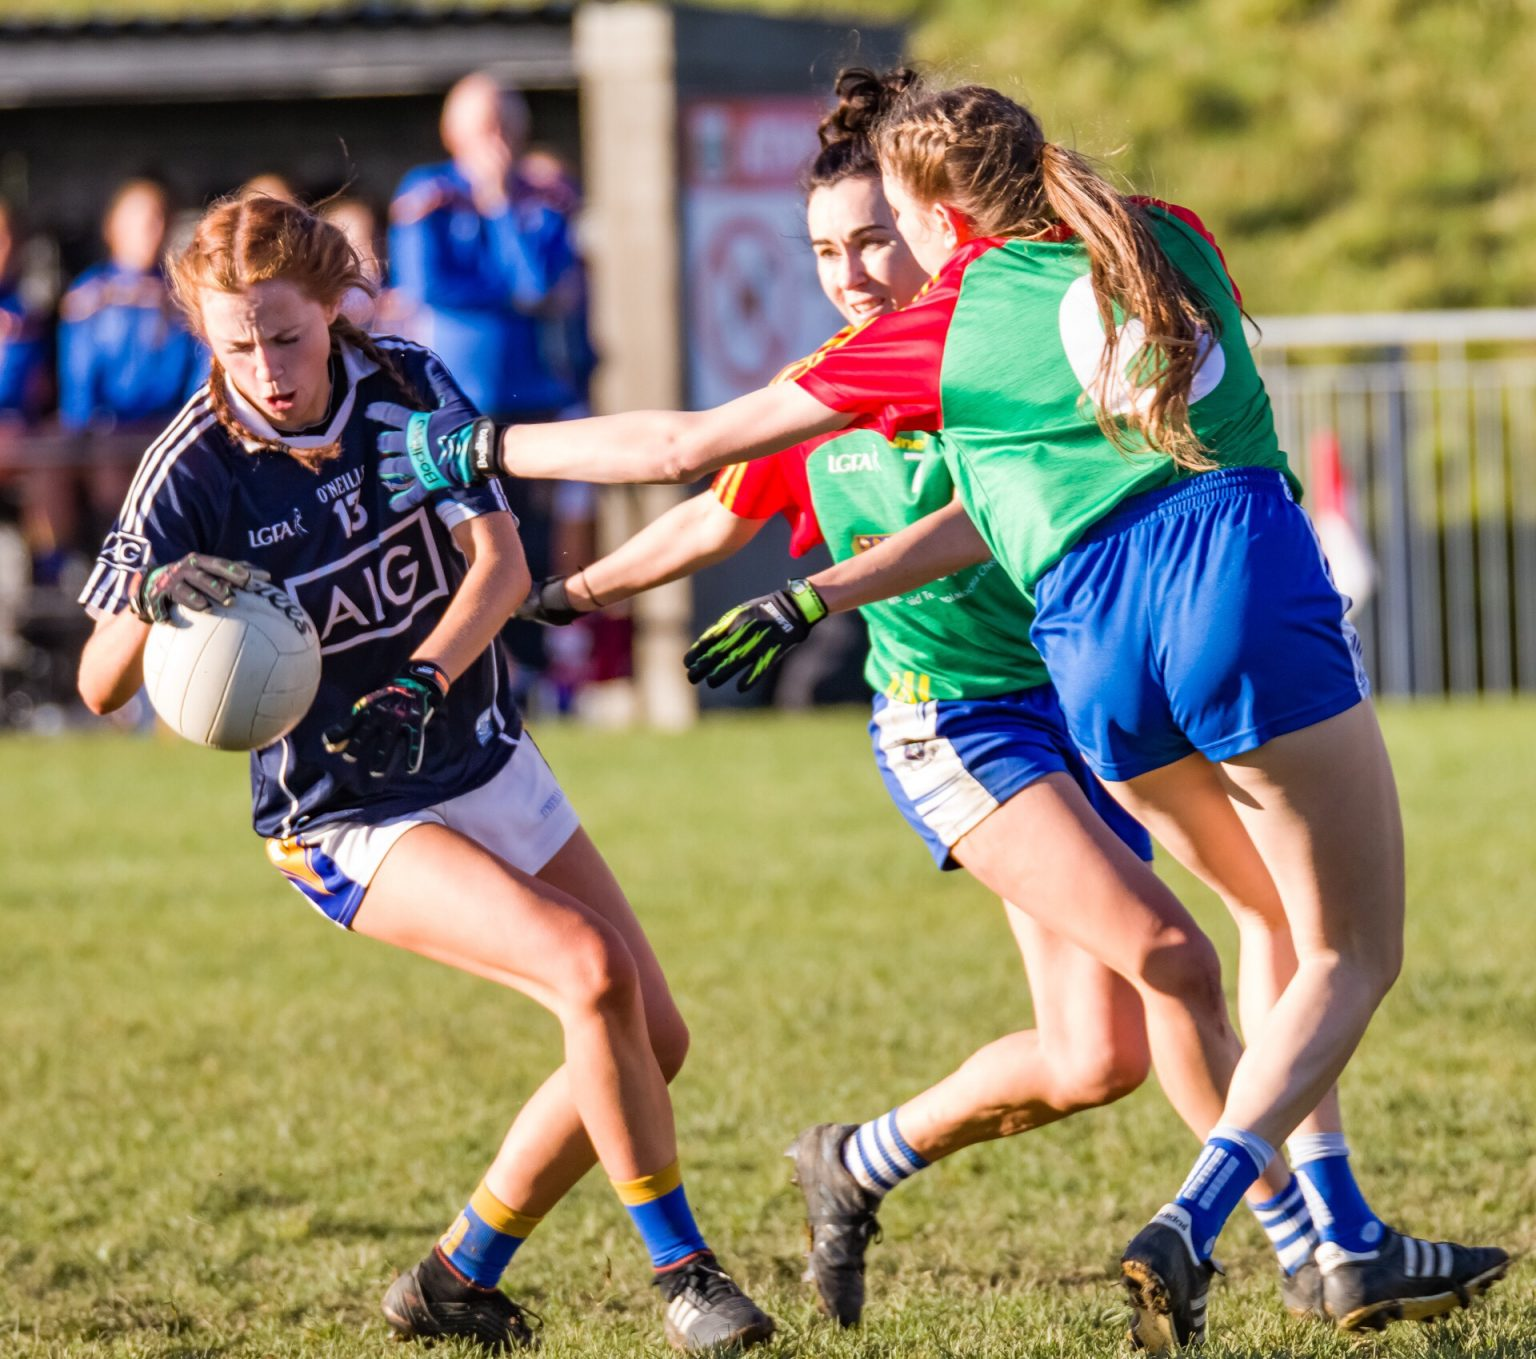 Castleknock Ladies footballer in a navy jersey and white shorts evades the attention of two opponents in green jerseys with red sleeves in the Junior Club Championship final